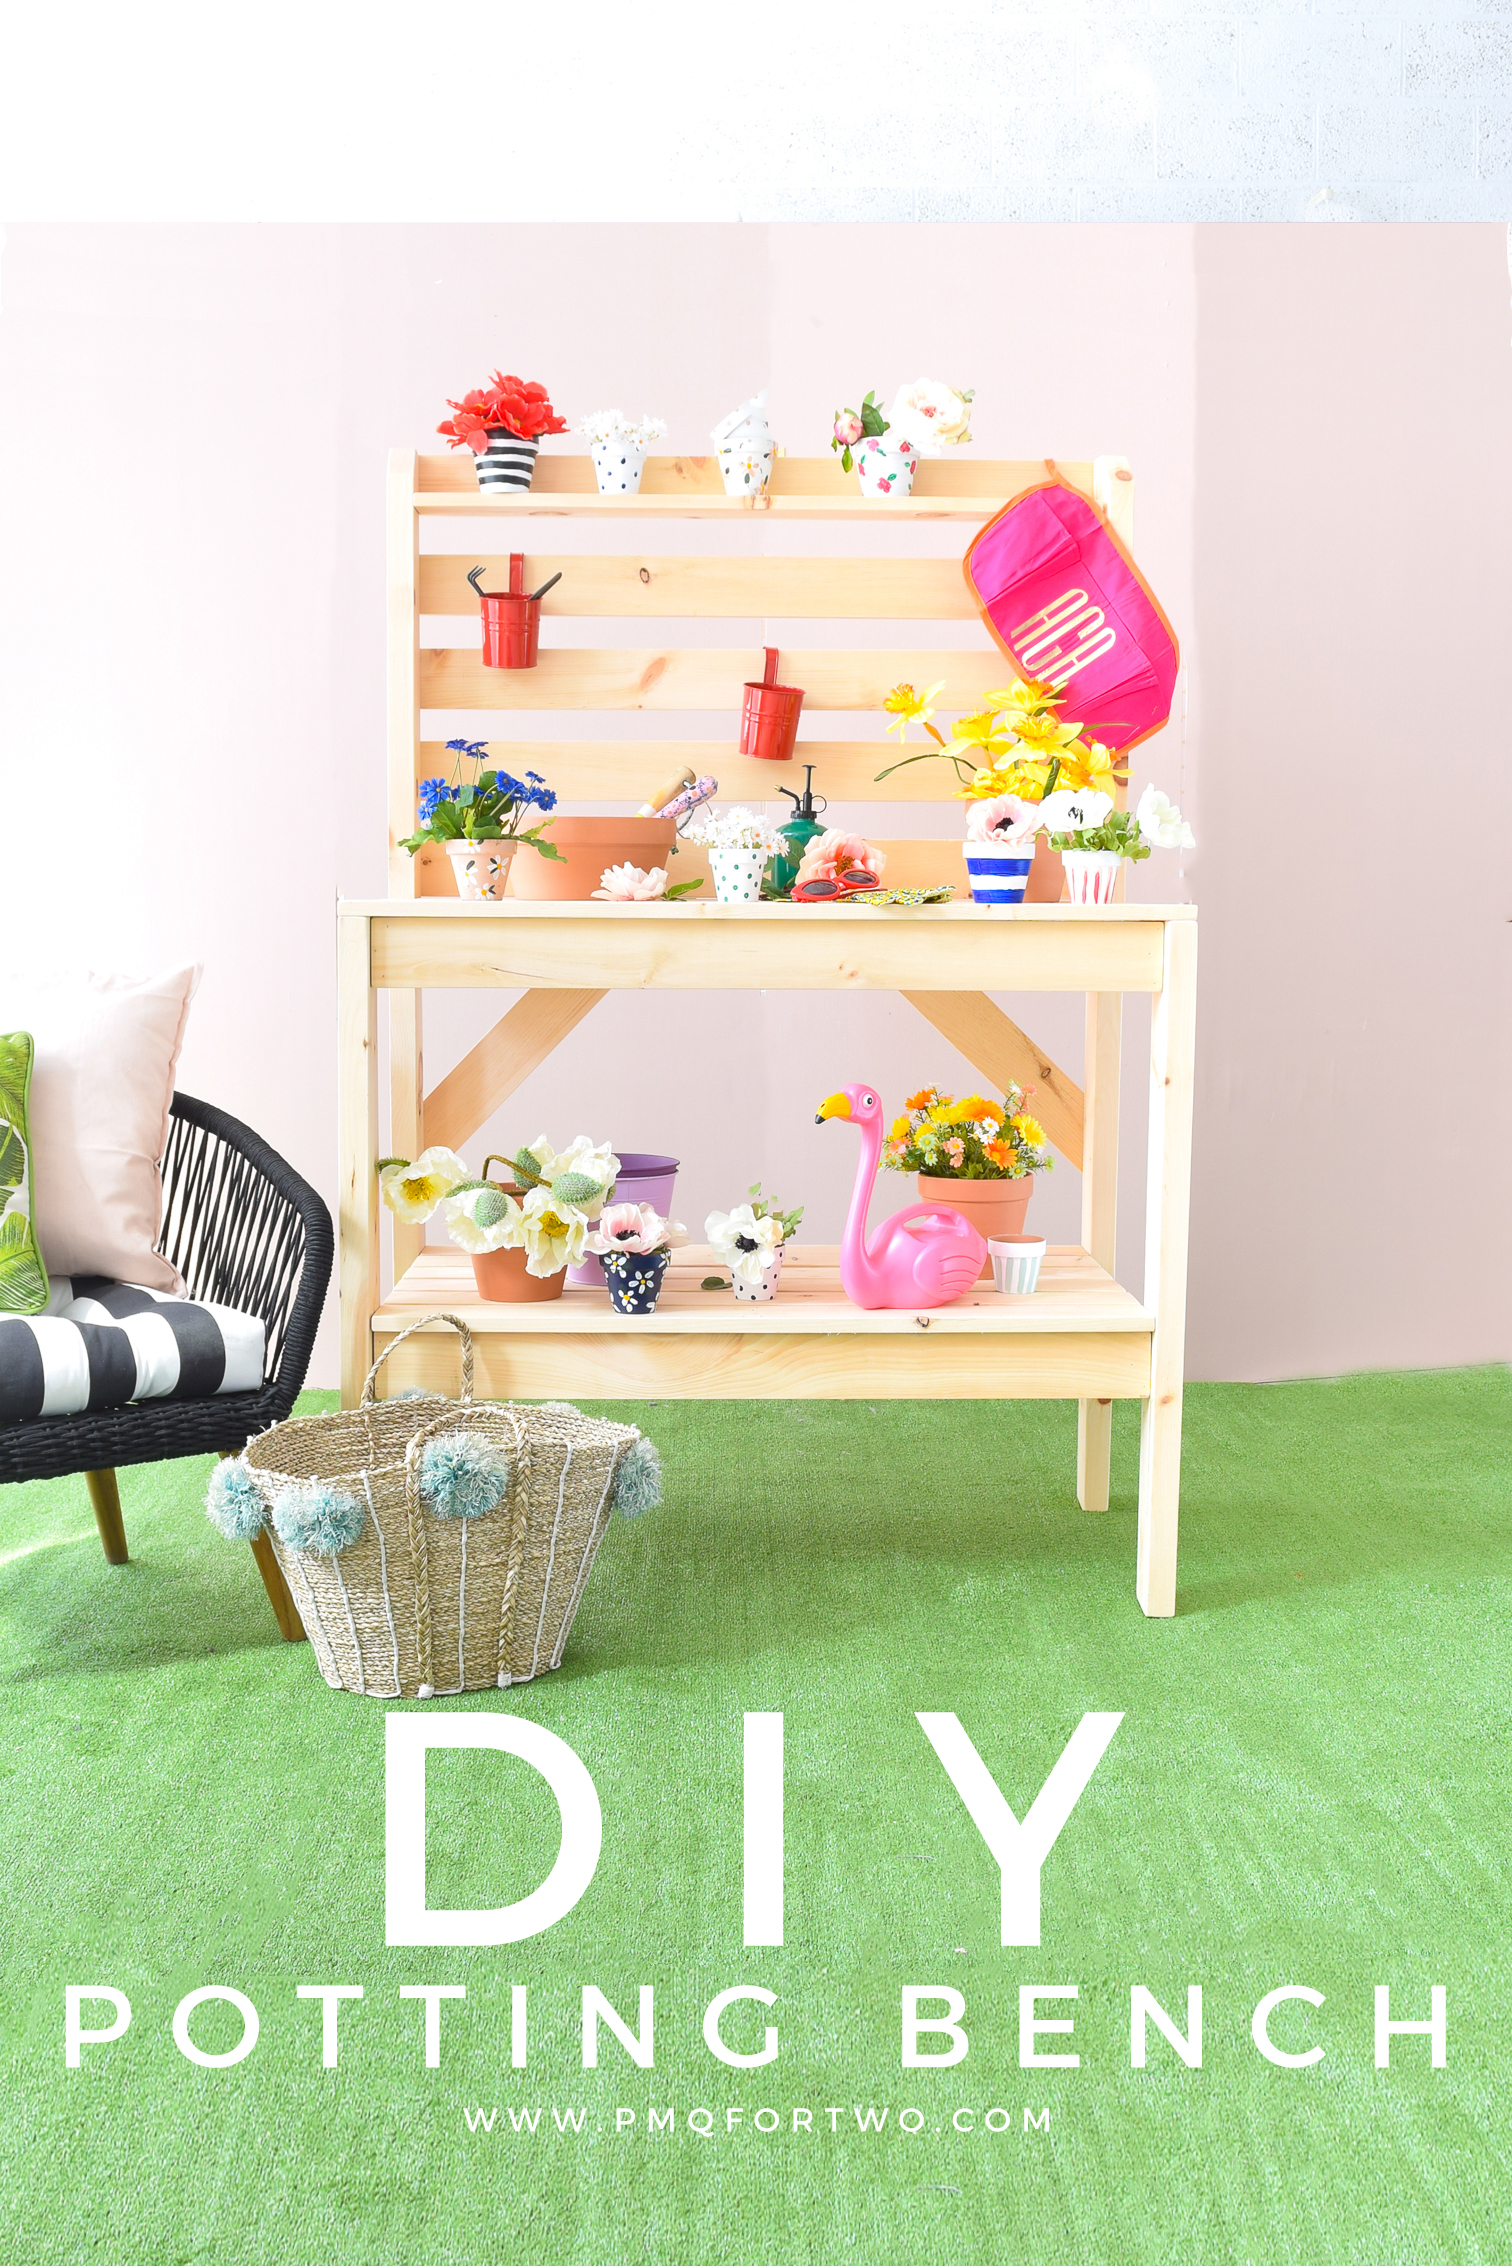 Get your build on with a DIY Potting Bench - perfect for spring and summer's blooming florals! PLUS, you can make it for under $200 and under 2hrs.